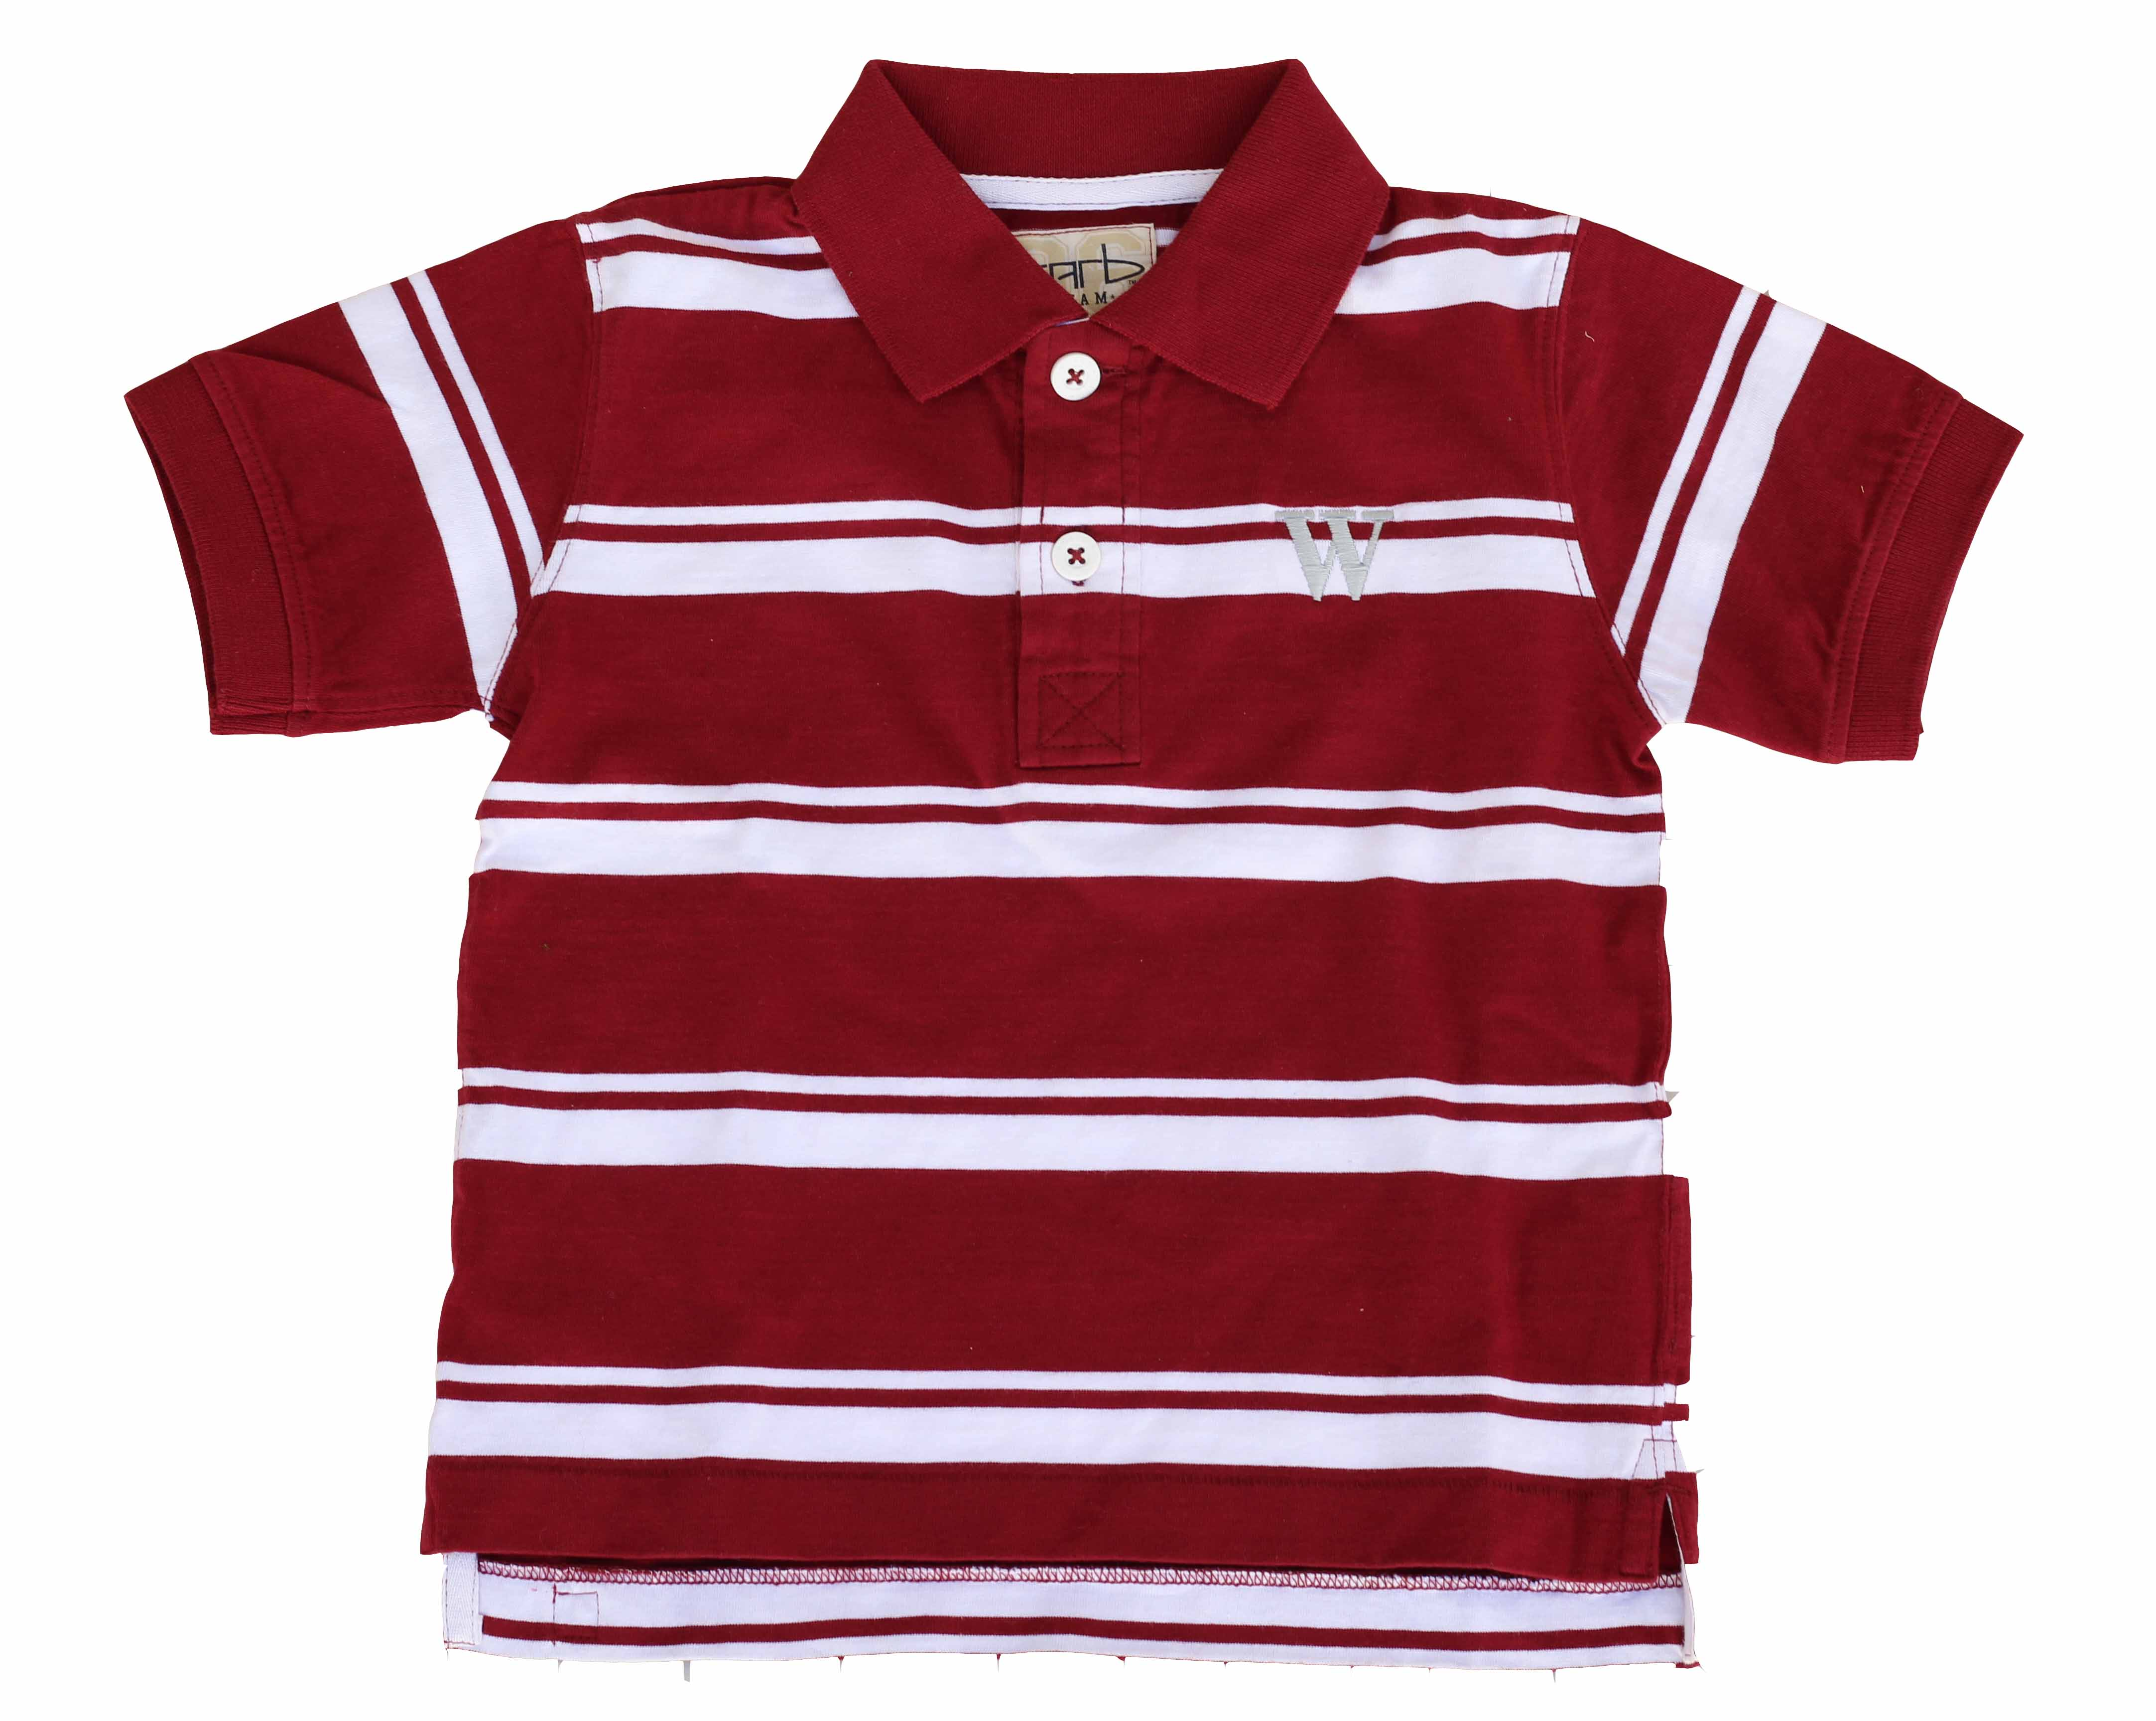 Image for the Garb Parker Polo product